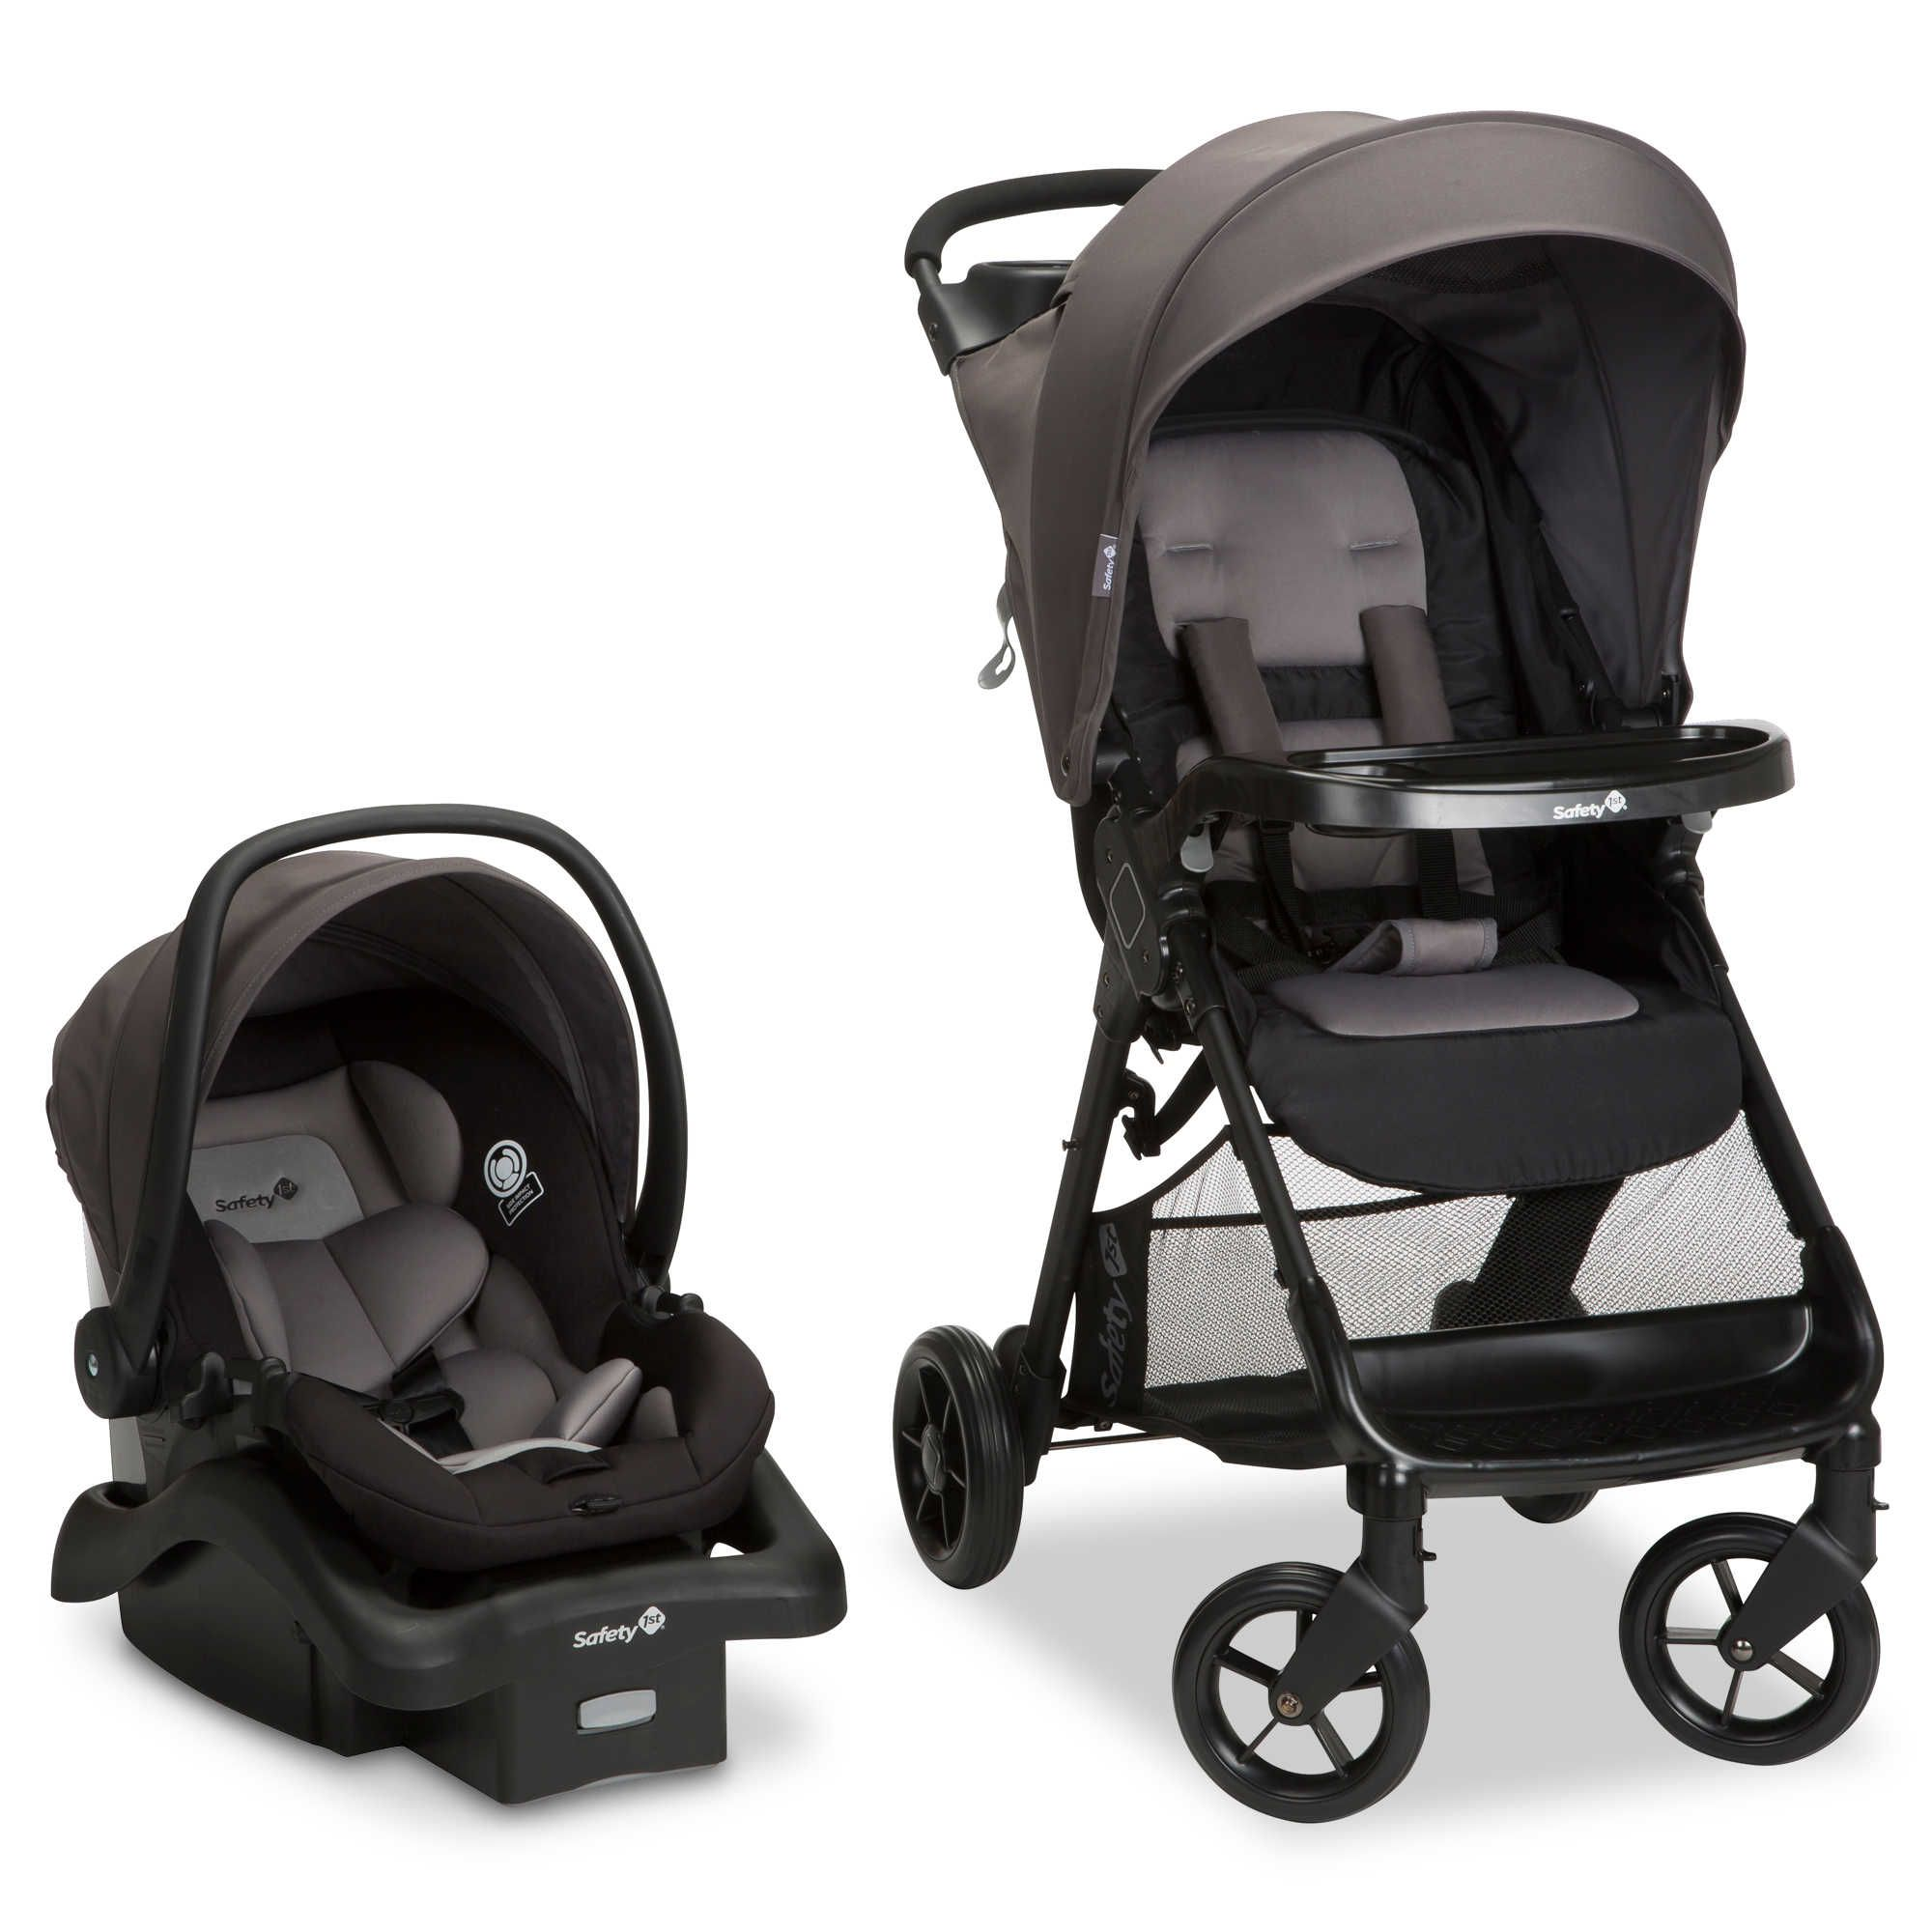 Safety 1st® Smooth Ride Travel System in Monument Travel